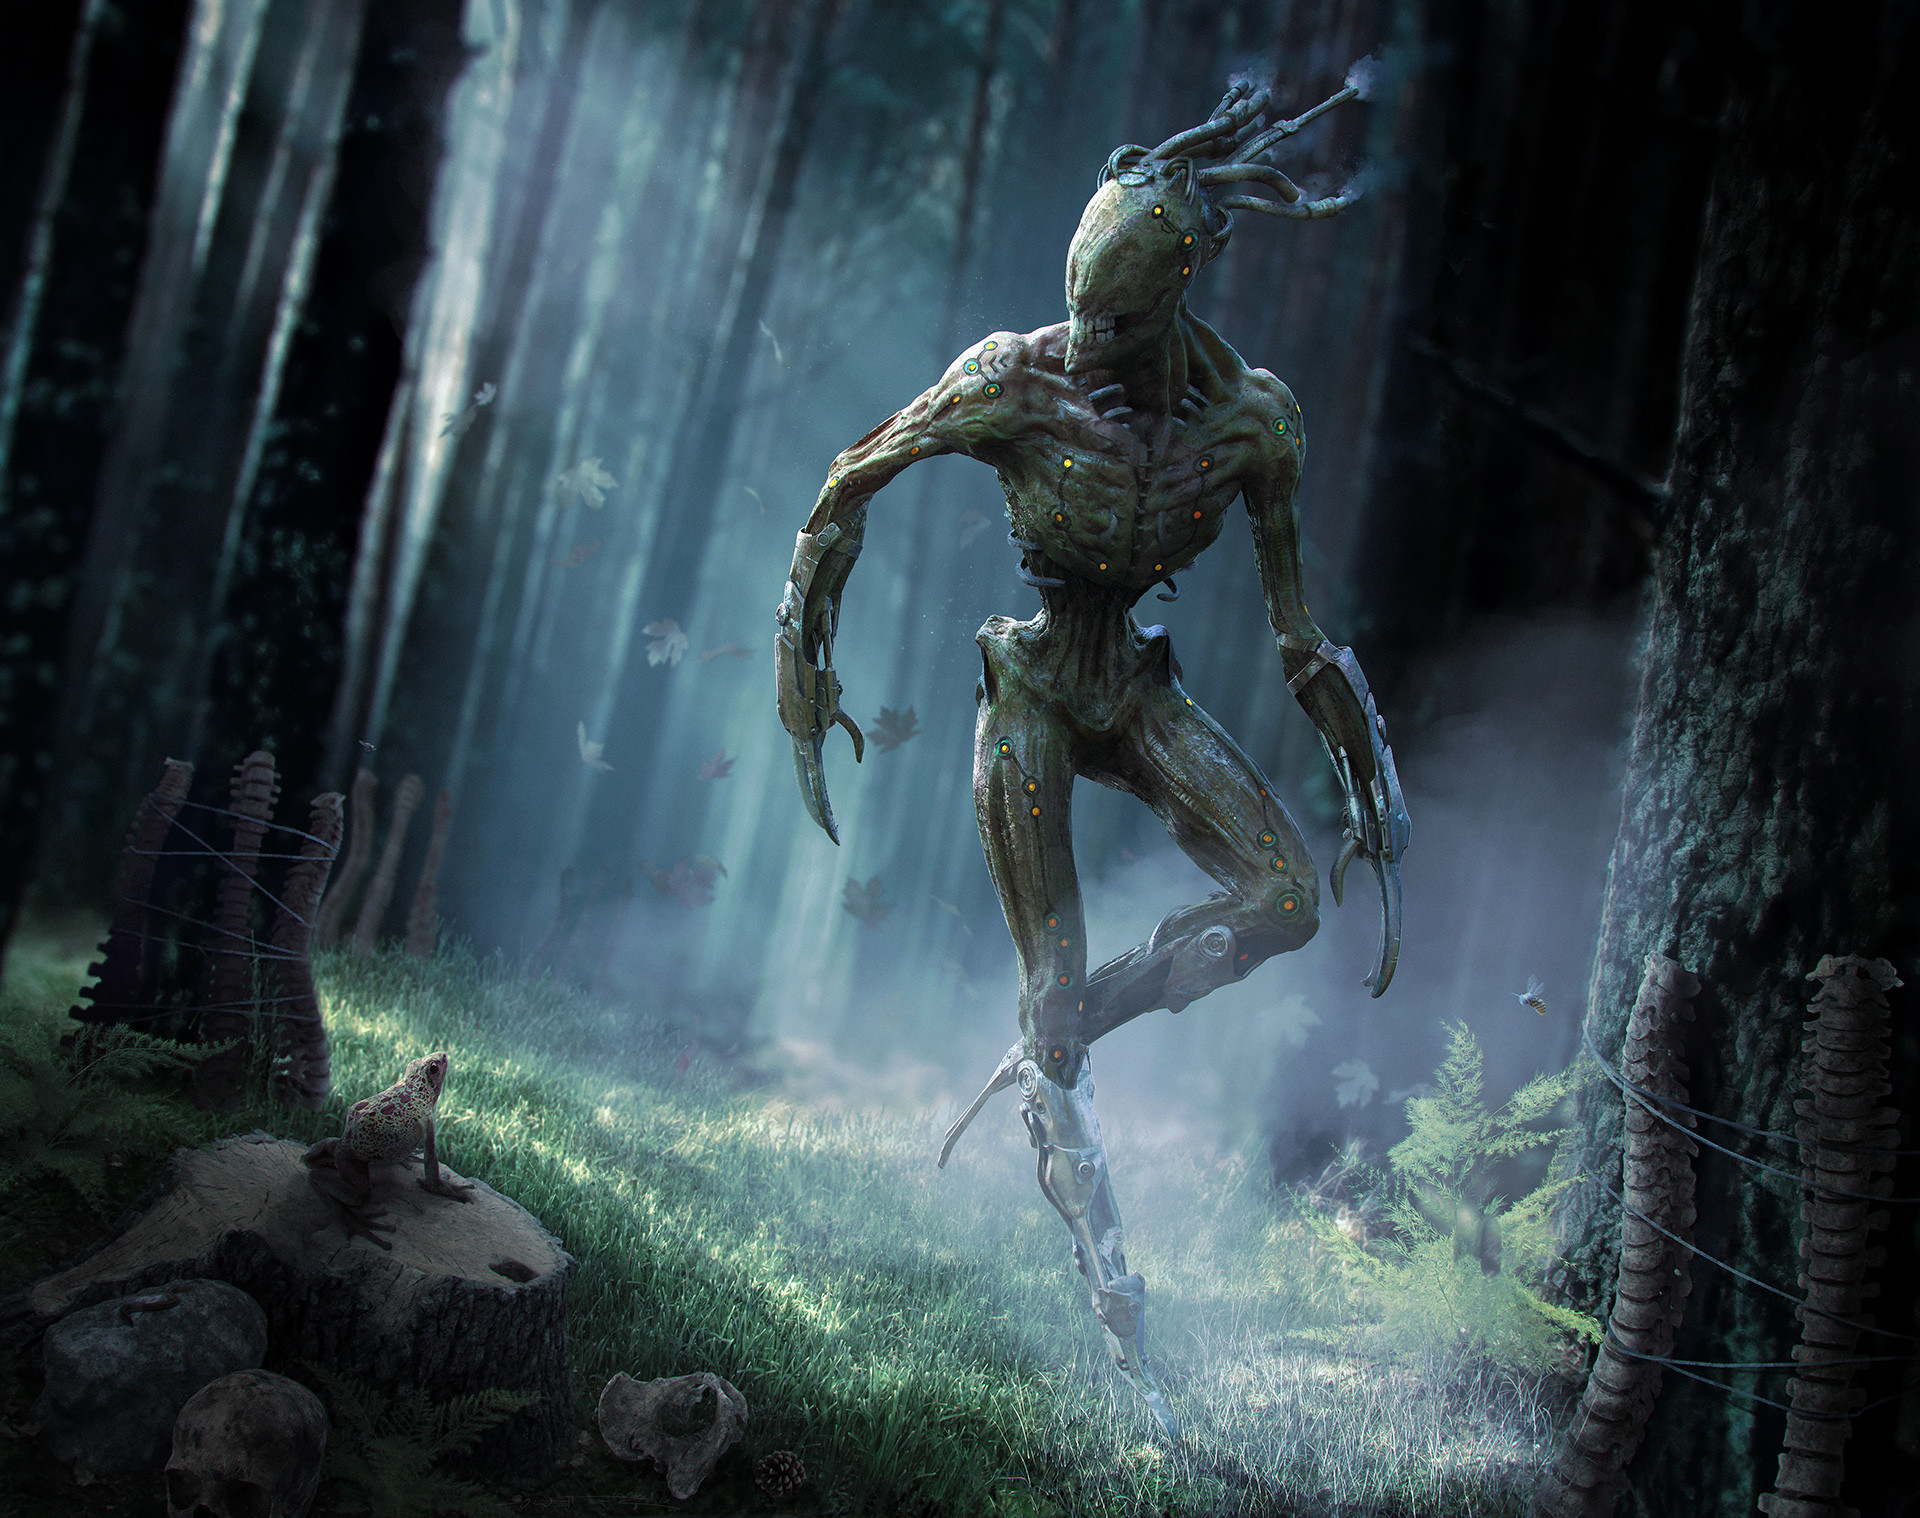 The Menk: Creepy Creature Design in Zbrush, Keyshot and PS